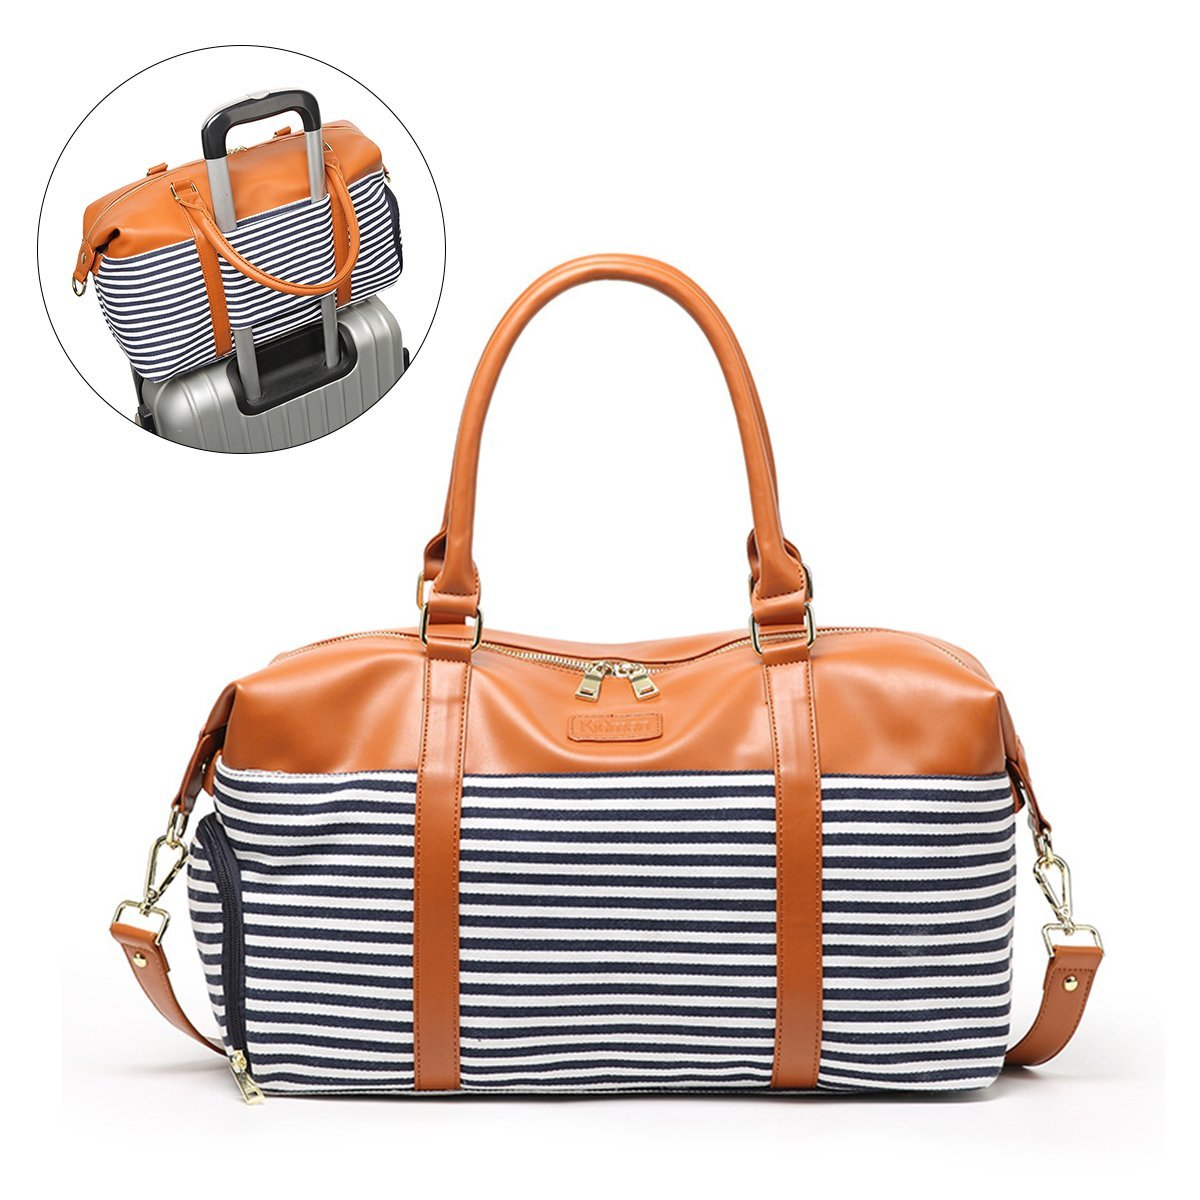 Stripe Weekend Travel Bag, OURBAG Women Crossbody Duffle Totes Overnight Bags